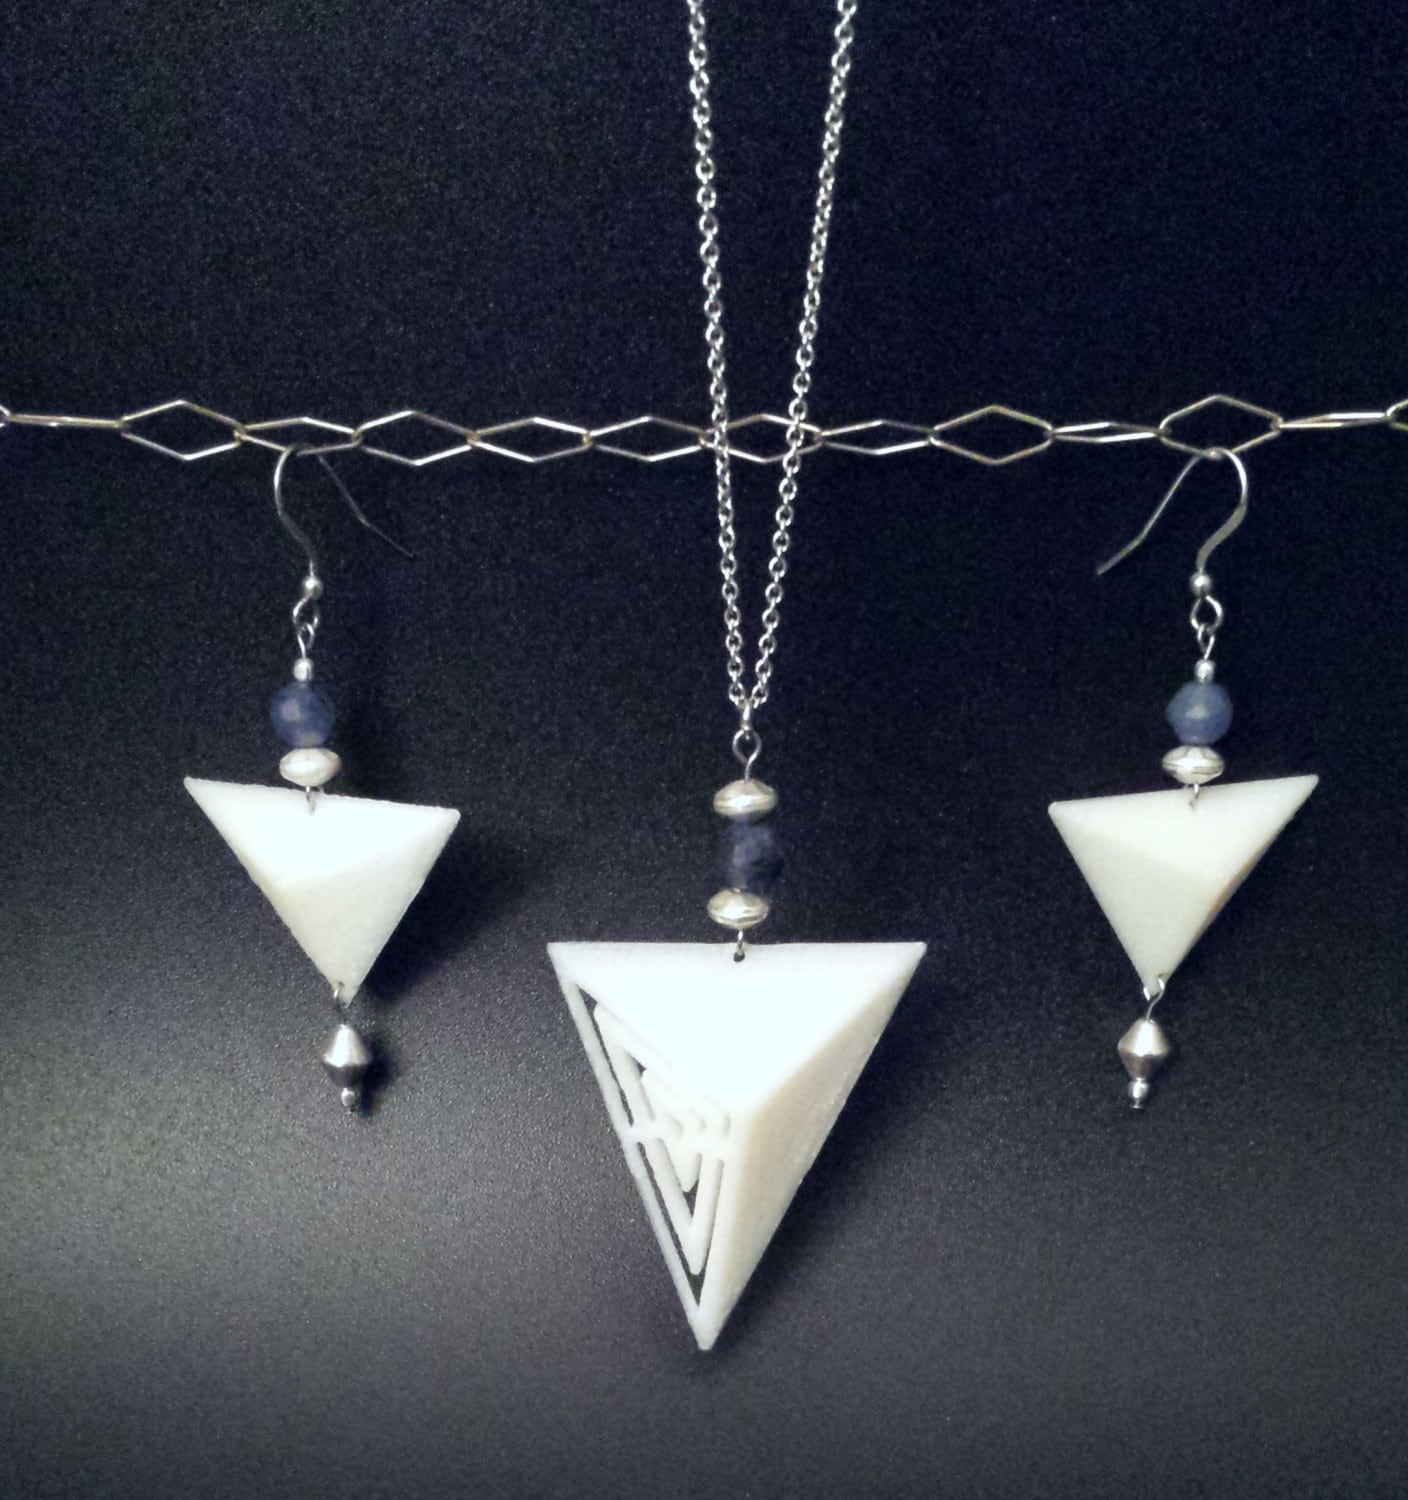 3D Printed Jewelry Geo Bold Necklace And Earrings By